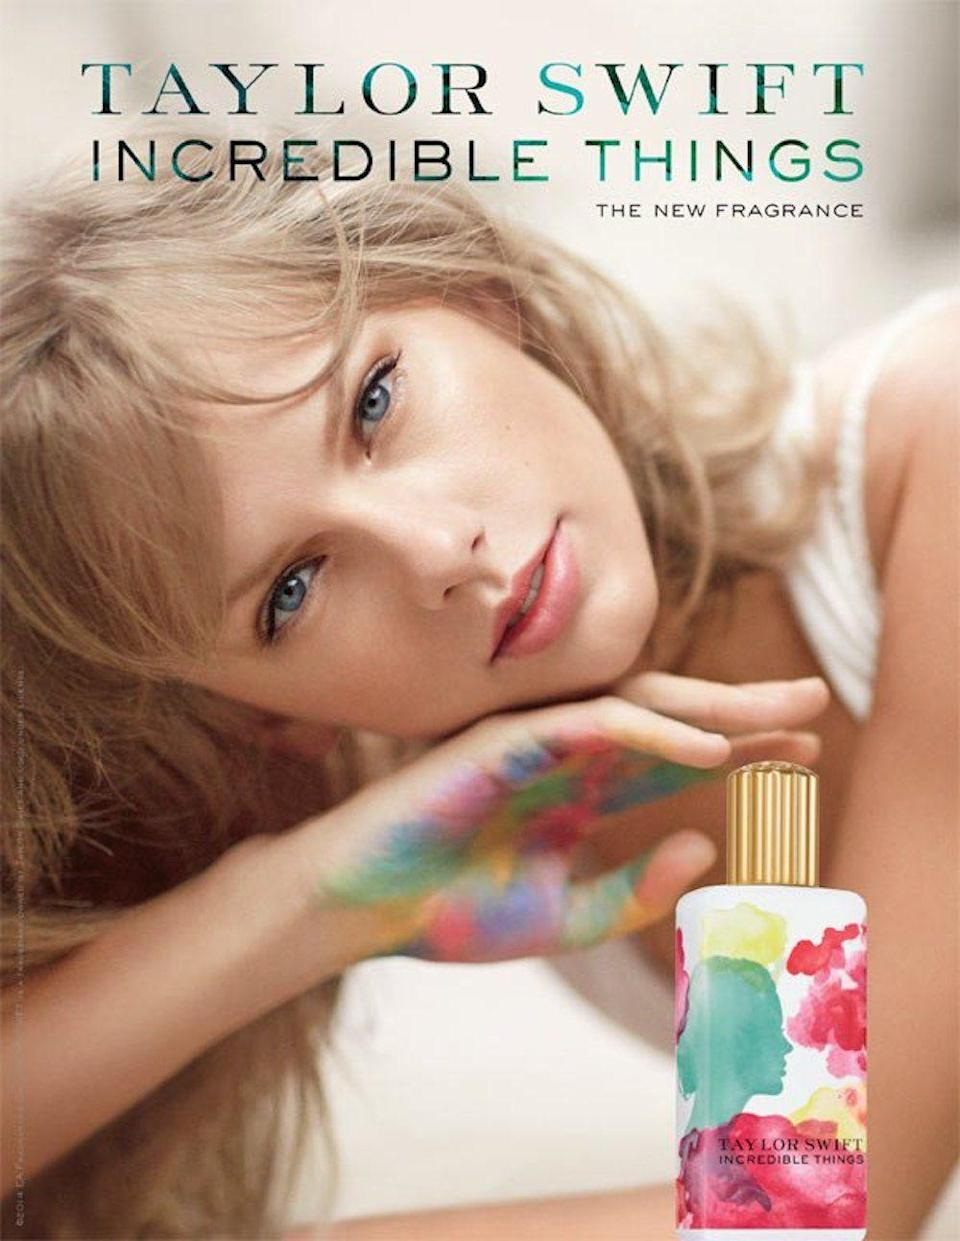 <p> Who is Picasso? Never heard of him. Taylor Swift's hand paint is the only art I recognize.</p>